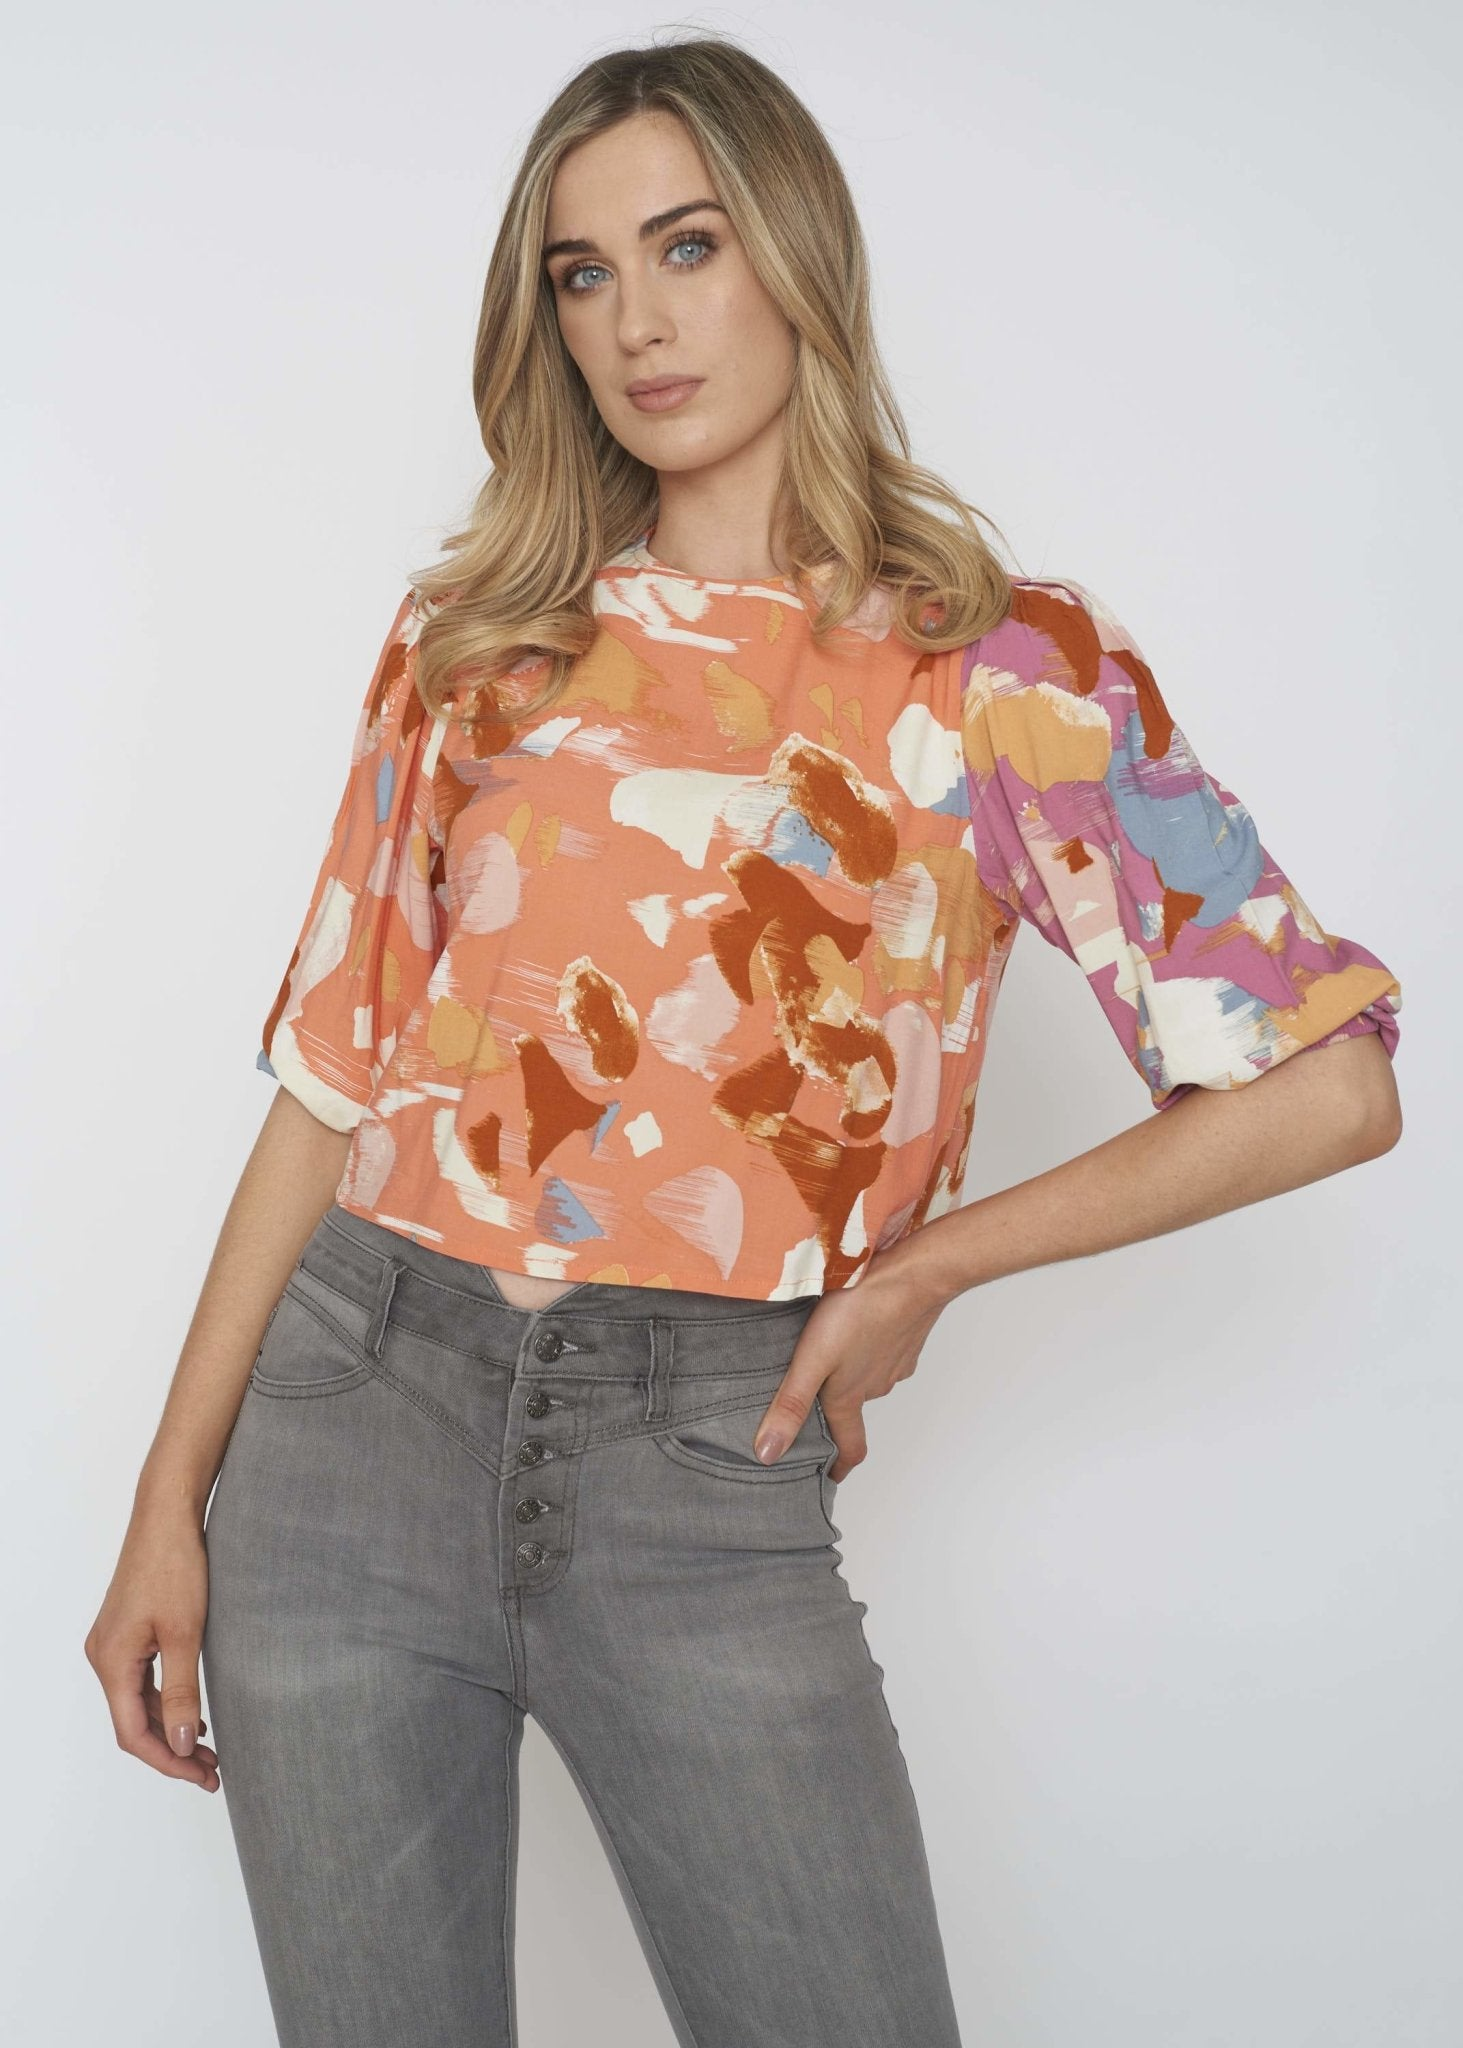 Freya Printed Top In Coral Mix - The Walk in Wardrobe